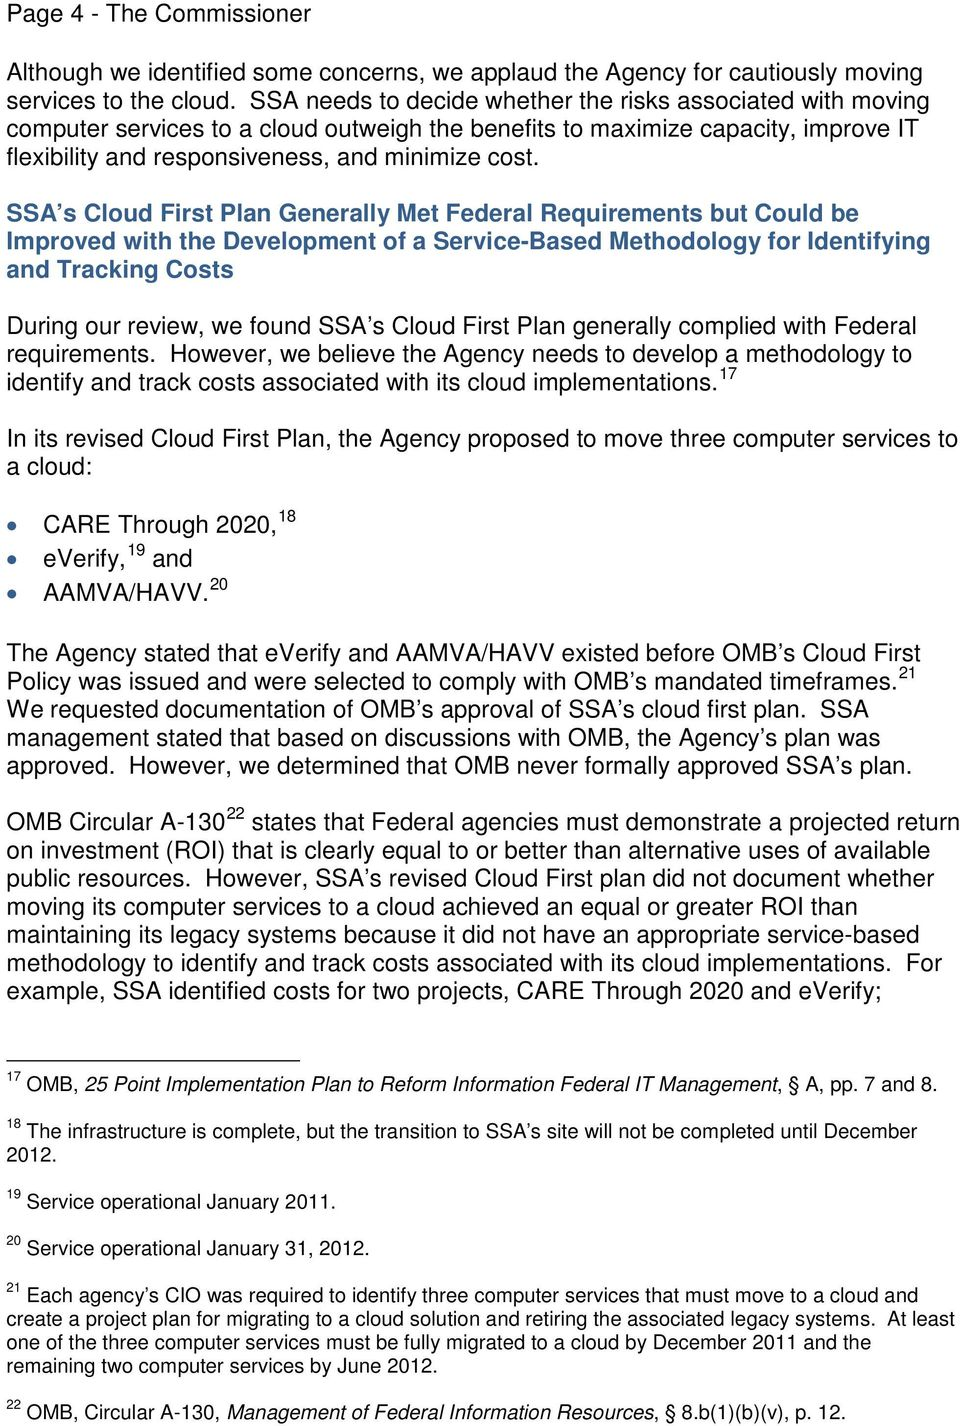 SSA s Cloud First Plan Generally Met Federal Requirements but Could be Improved with the Development of a Service-Based Methodology for Identifying and Tracking Costs During our review, we found SSA